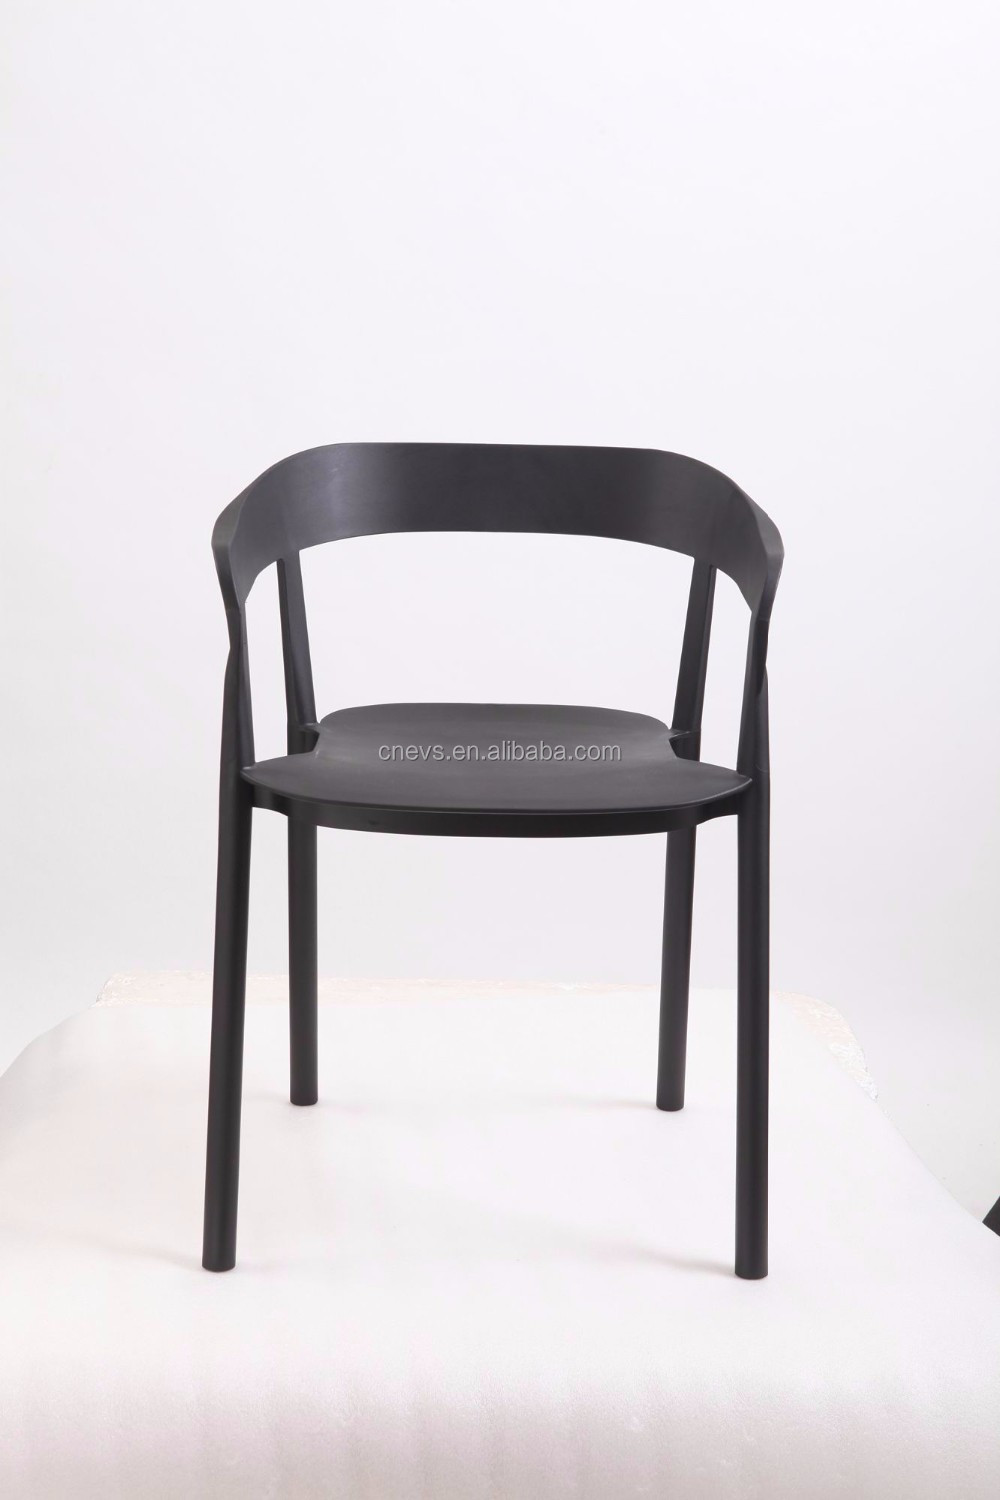 Popular High Quality High Plastic Leisure Chair Dining Chair